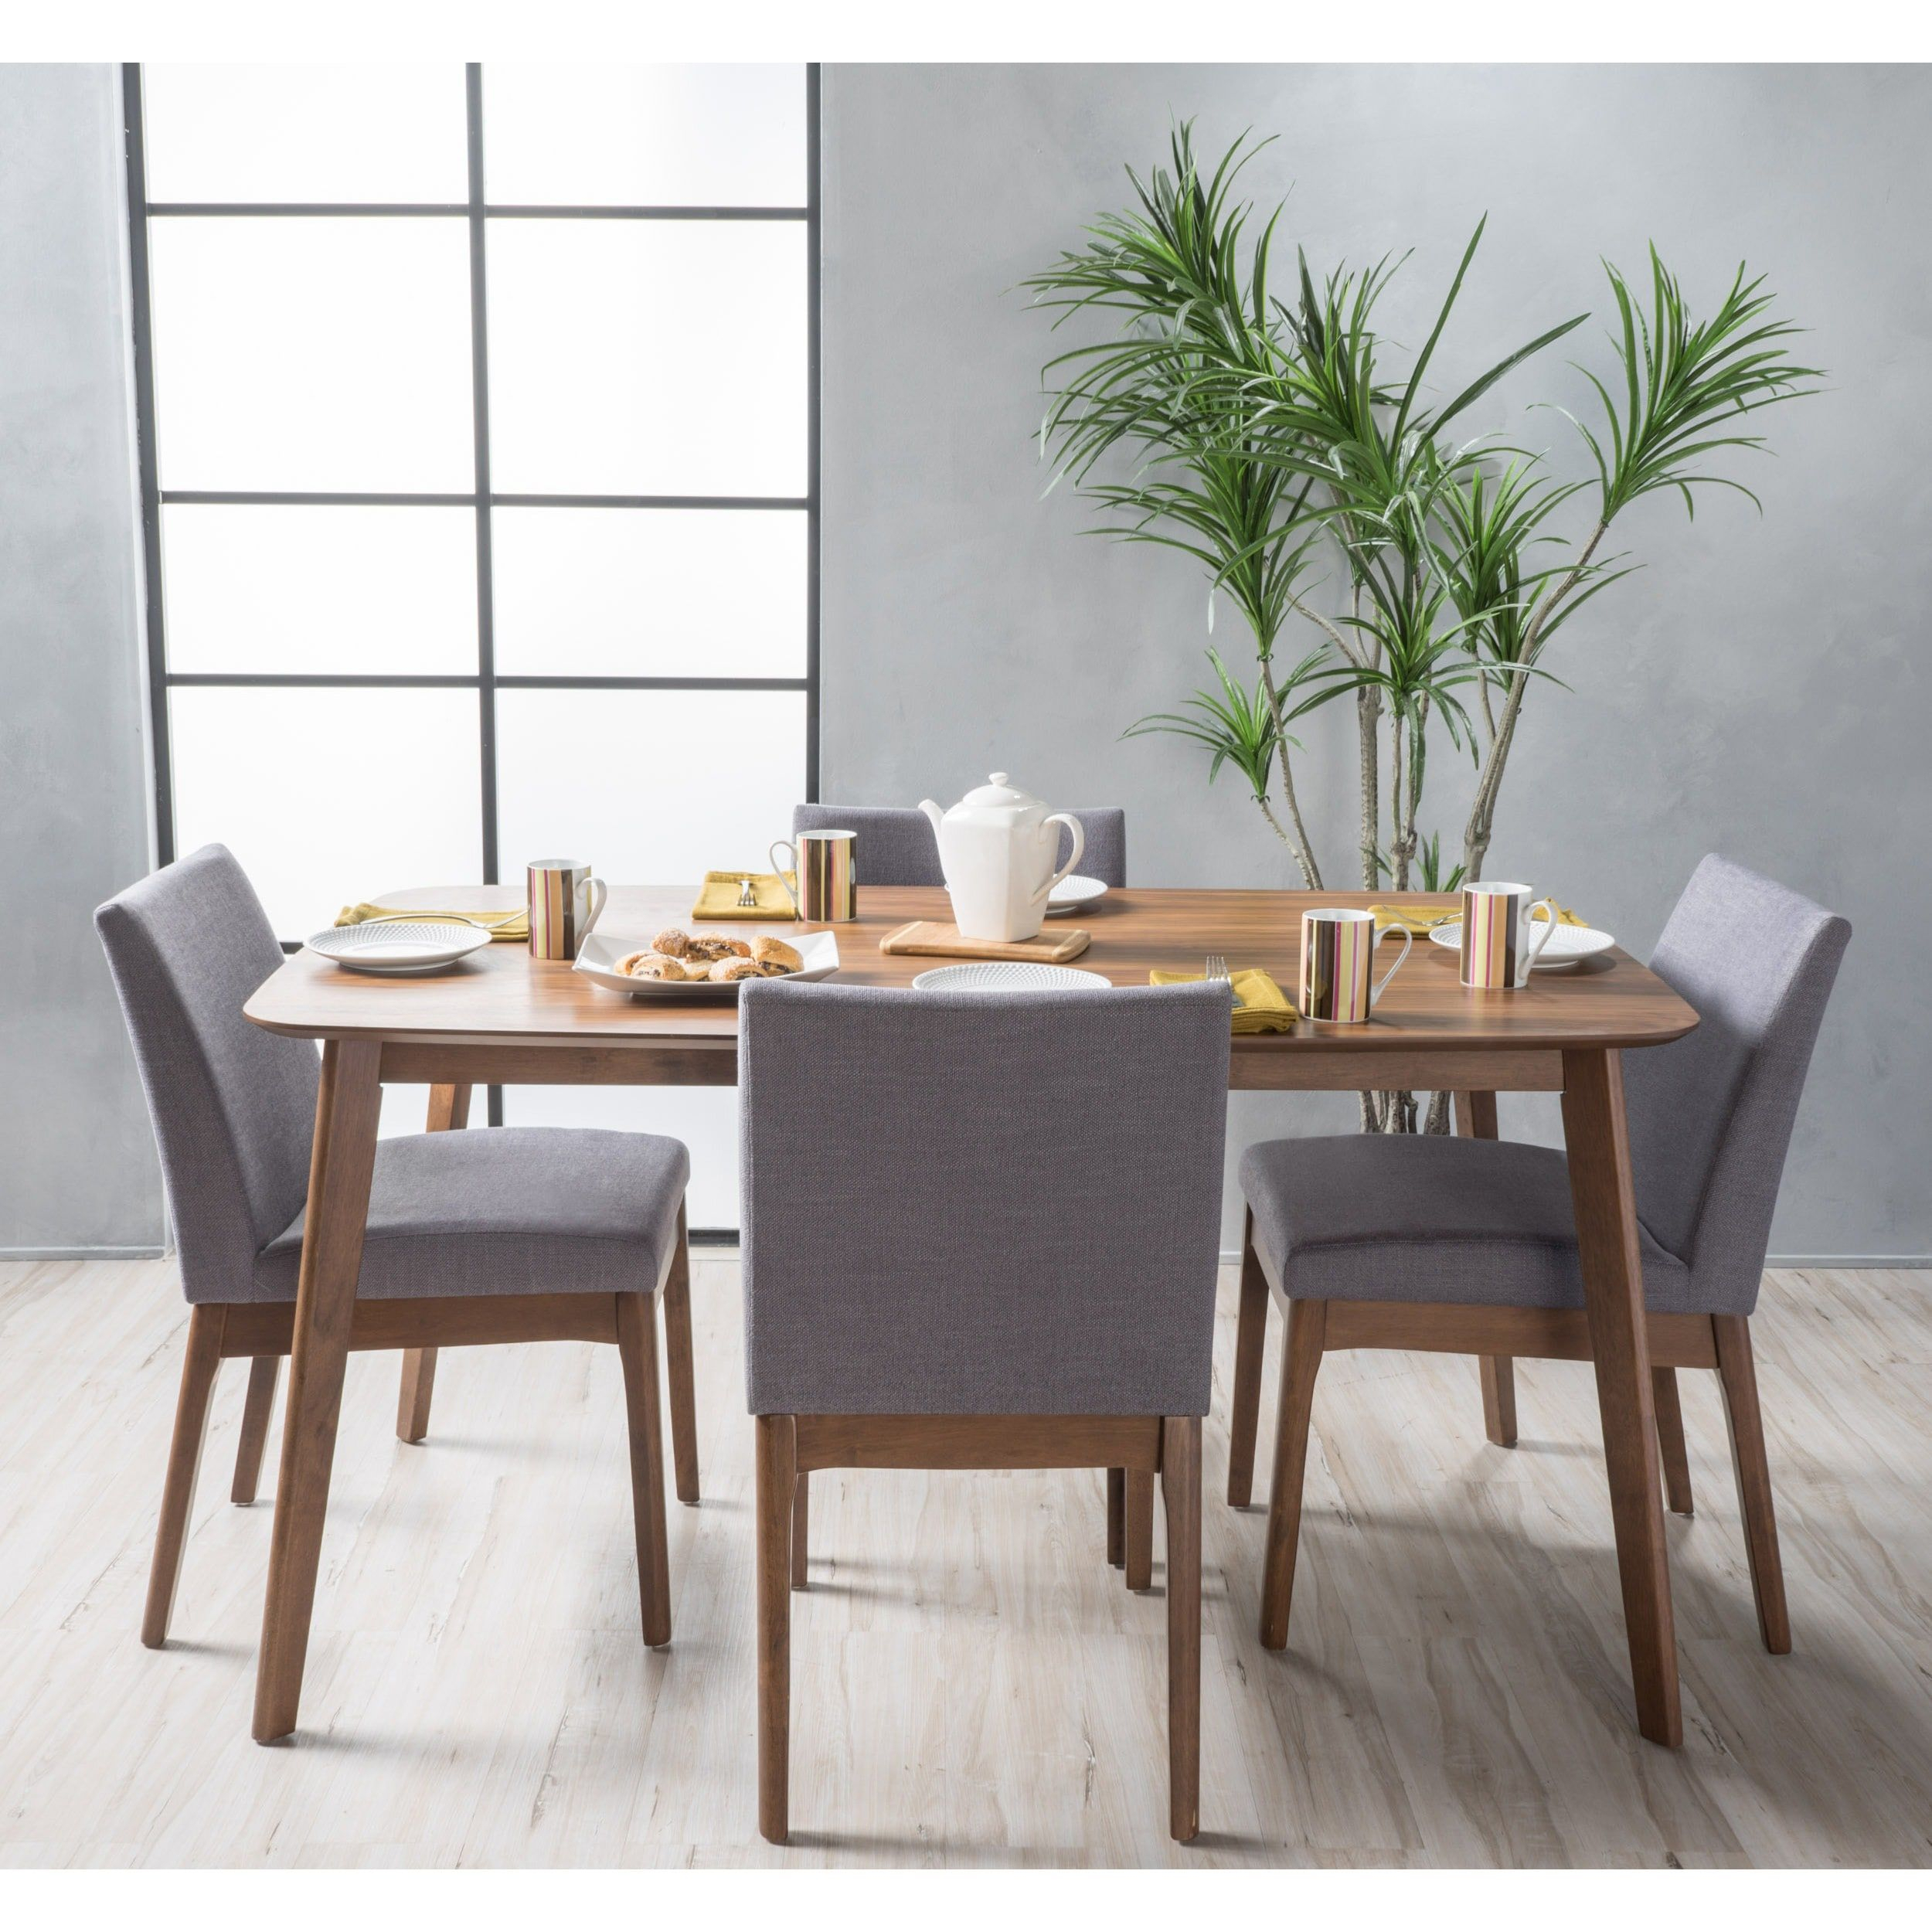 Carson Carrington Kotka Mid Century 5 Piece Dining Set (Walnut For Recent Tavarez 5 Piece Dining Sets (Image 4 of 20)